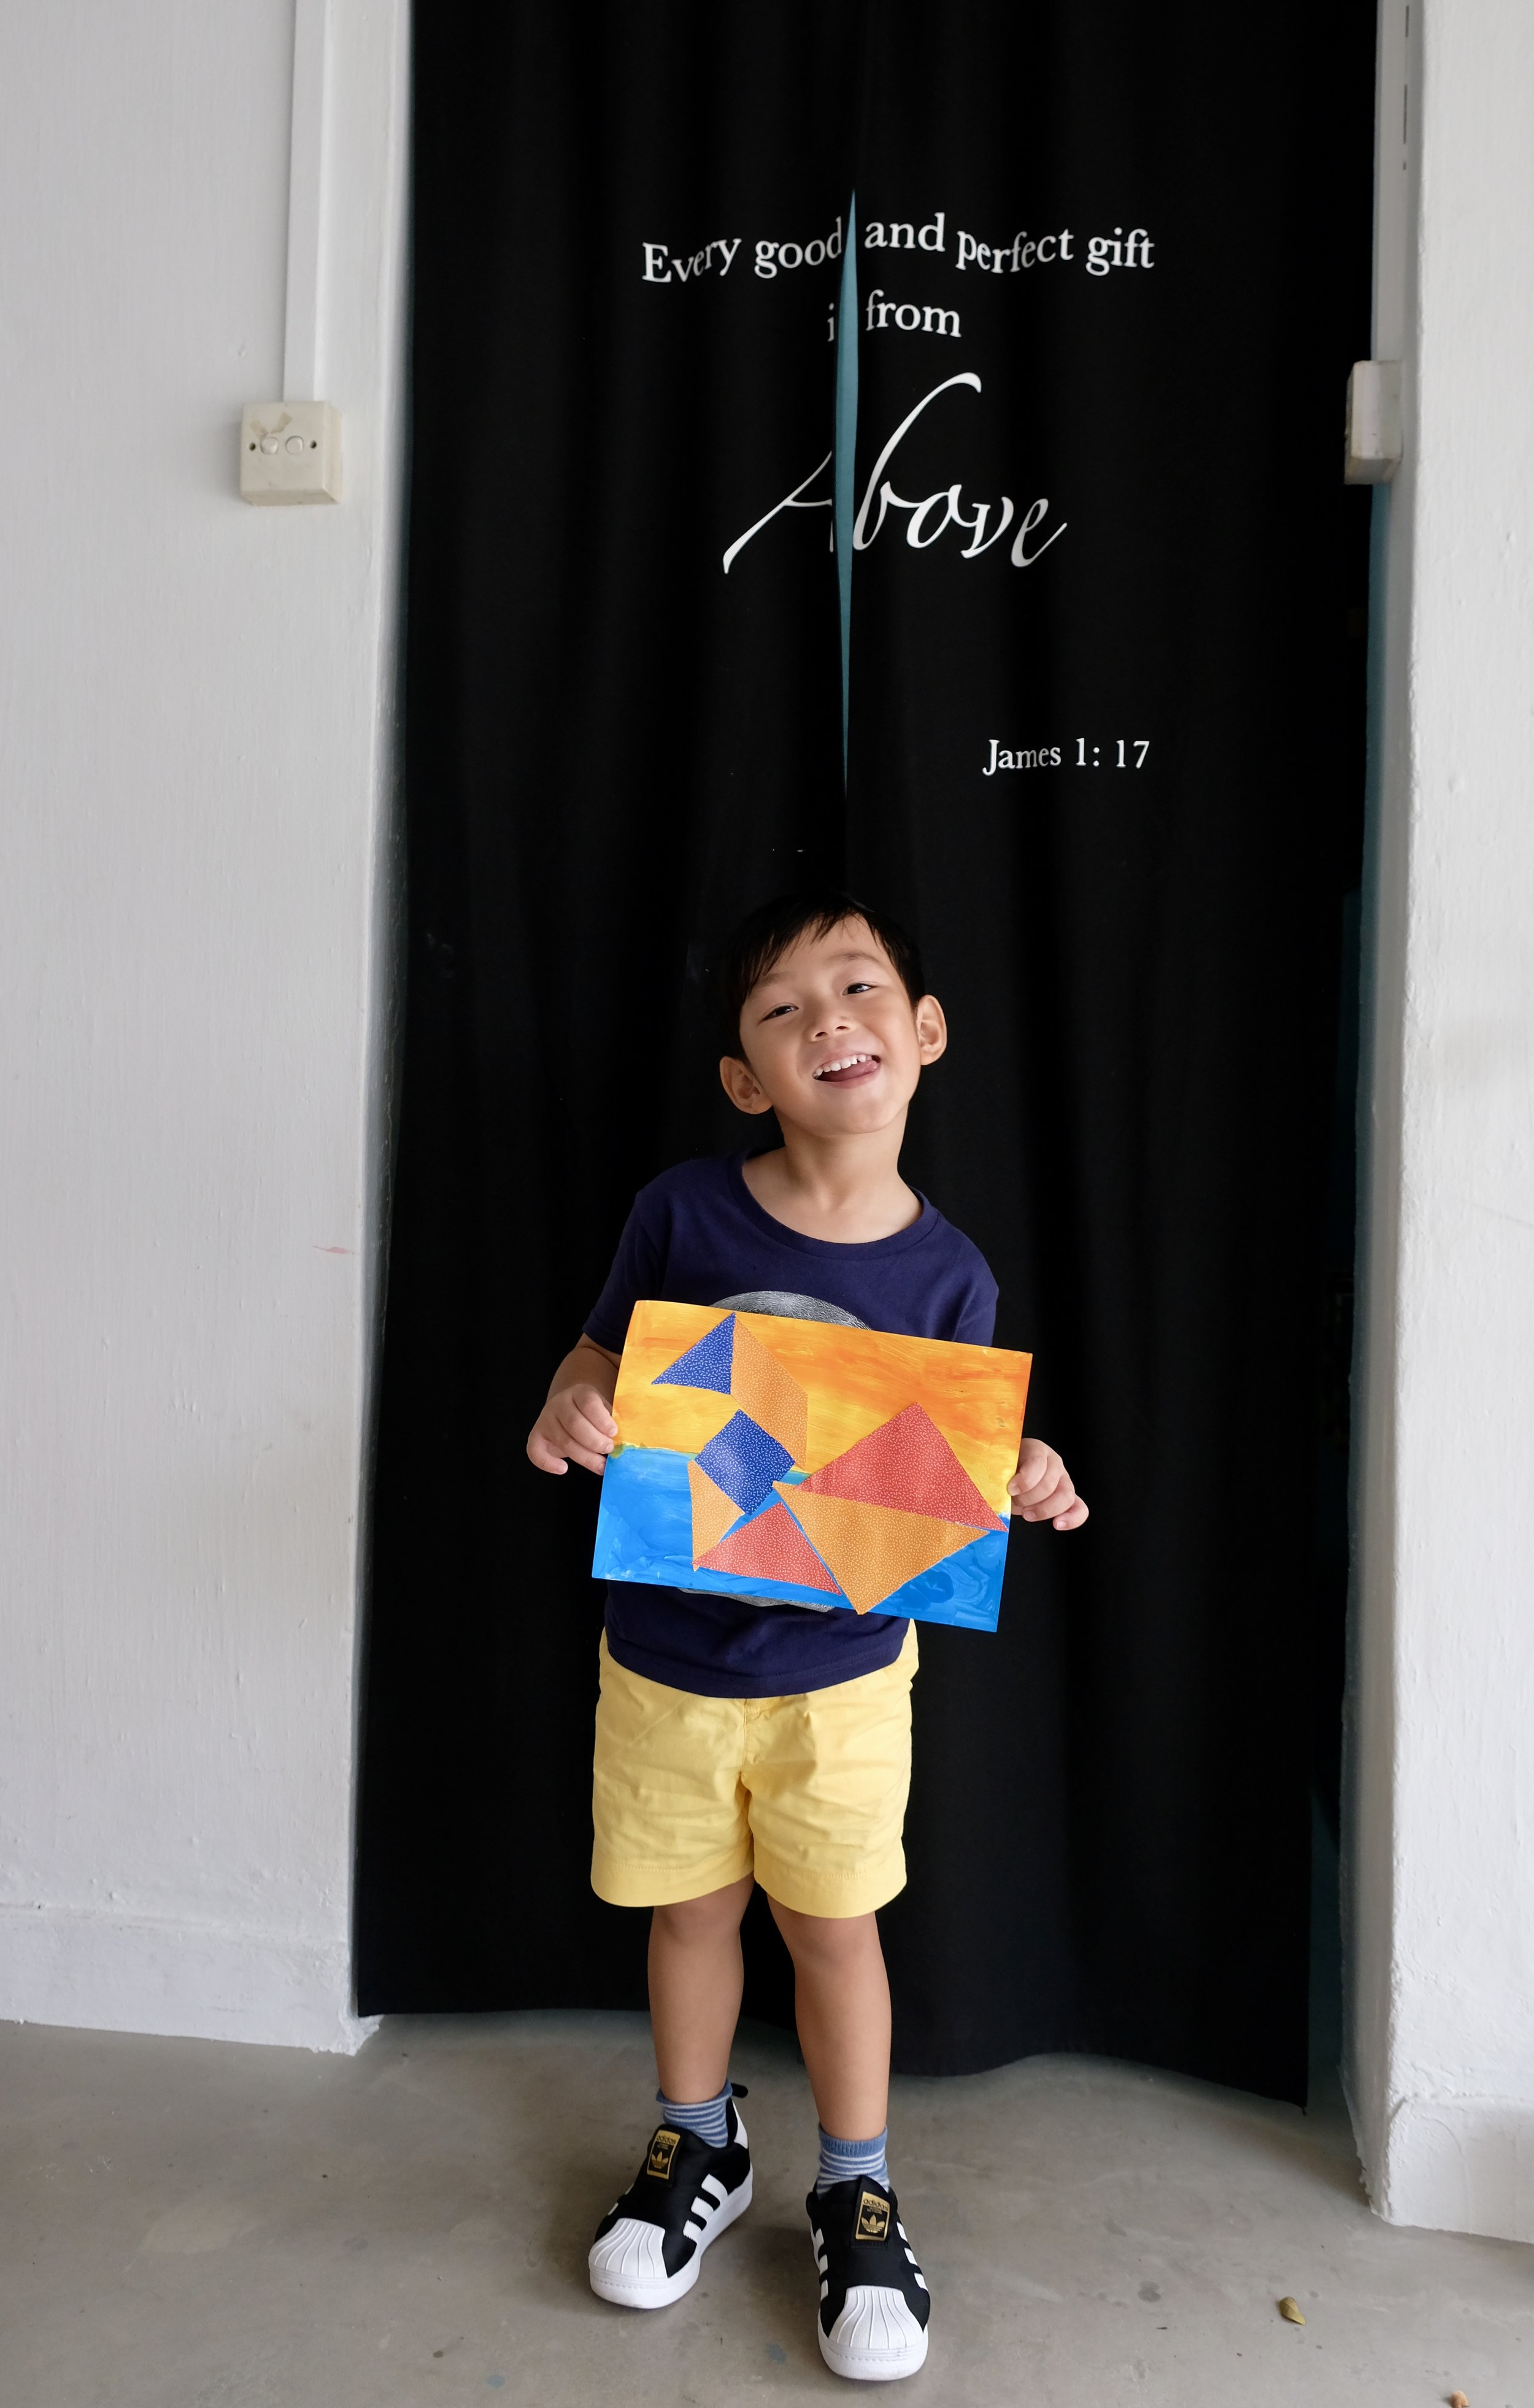 His finished piece of artwork!